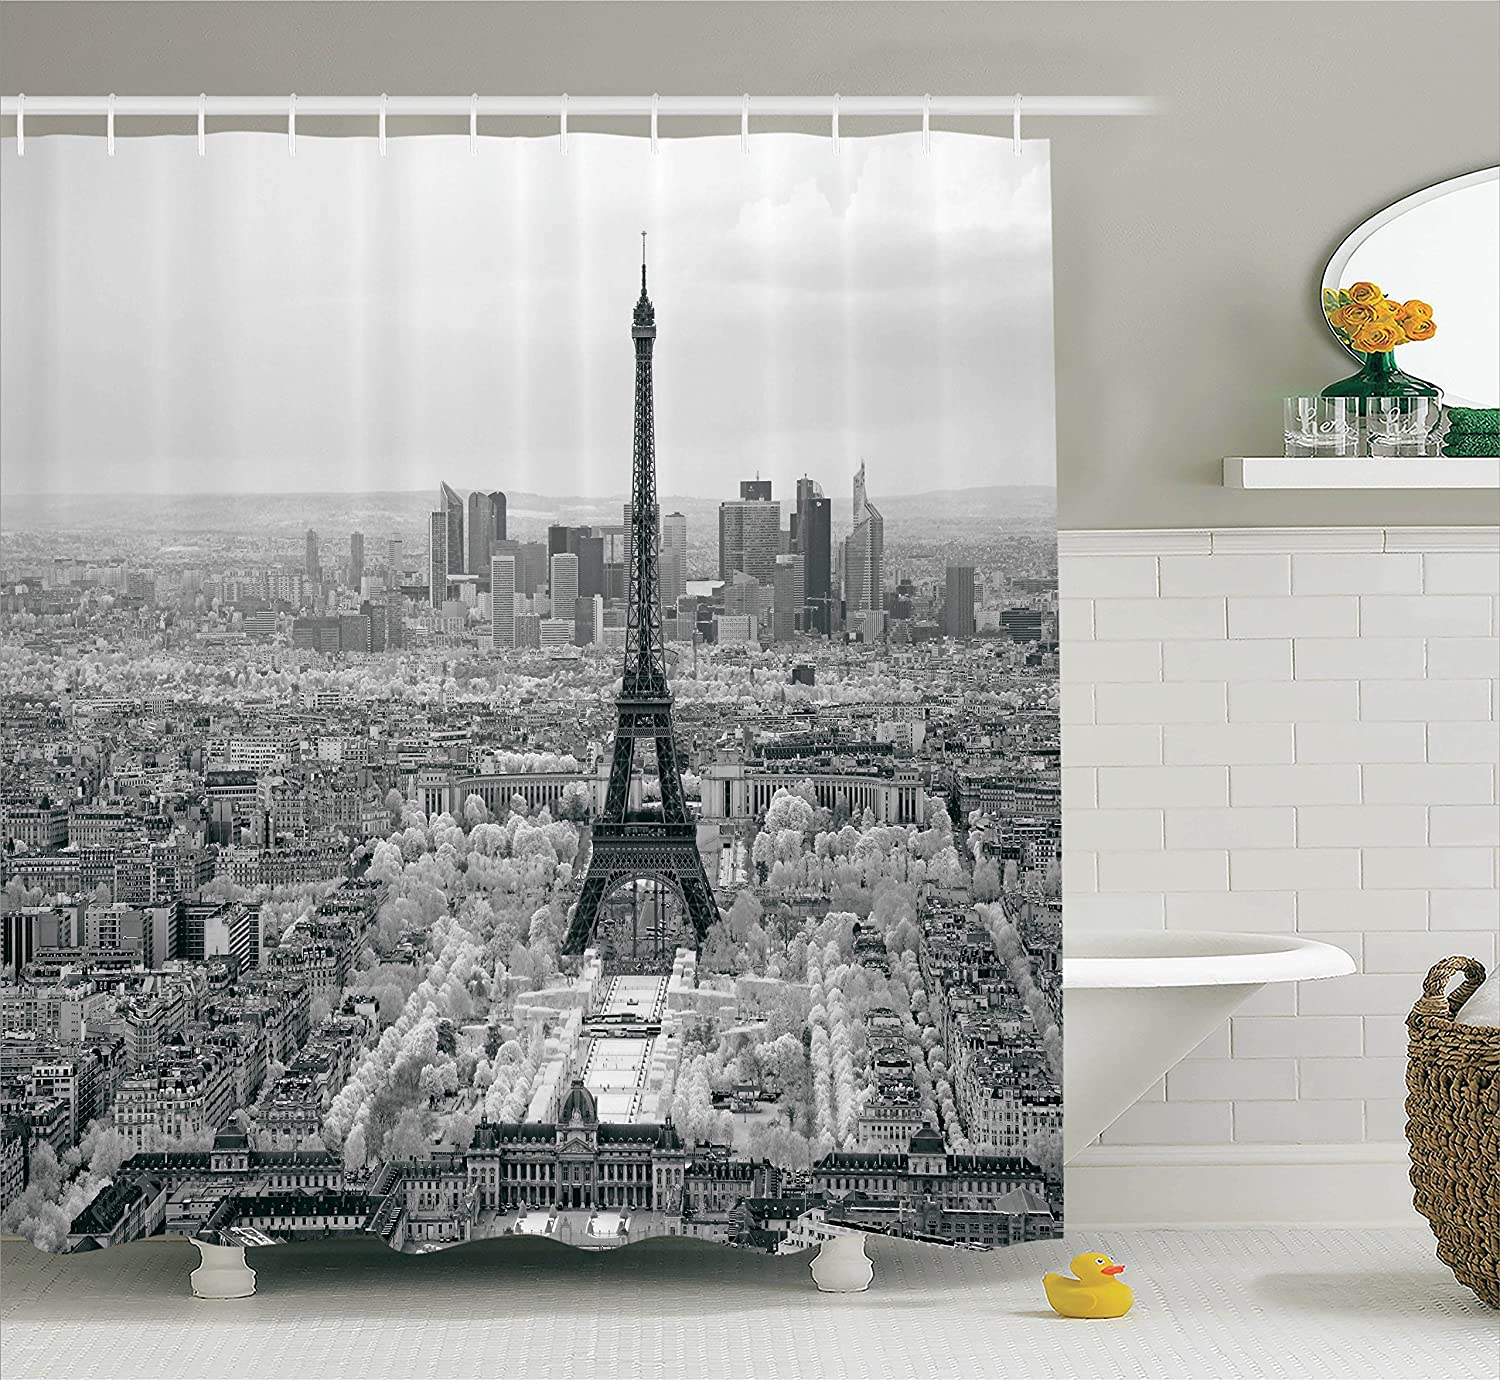 Ambesonne Eiffel Tower Decor Collection, The Eiffel Tower Paris City Structure Morning Scenic Monochrome Classic Simple Art, Polyester Fabric Bathroom Shower Curtain, 75 Inches Long, Gray